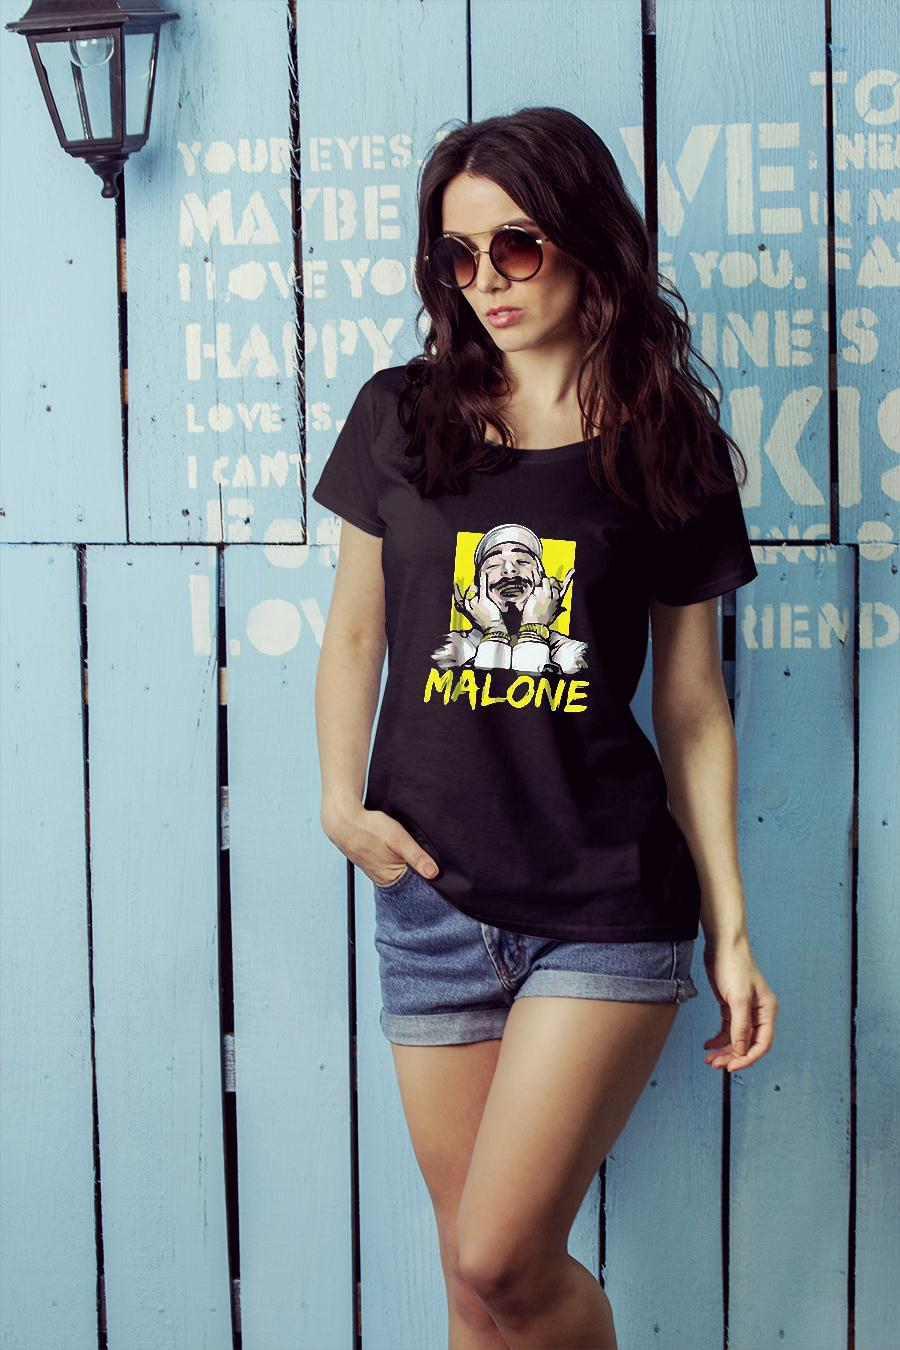 Malone shirt ladies tee official